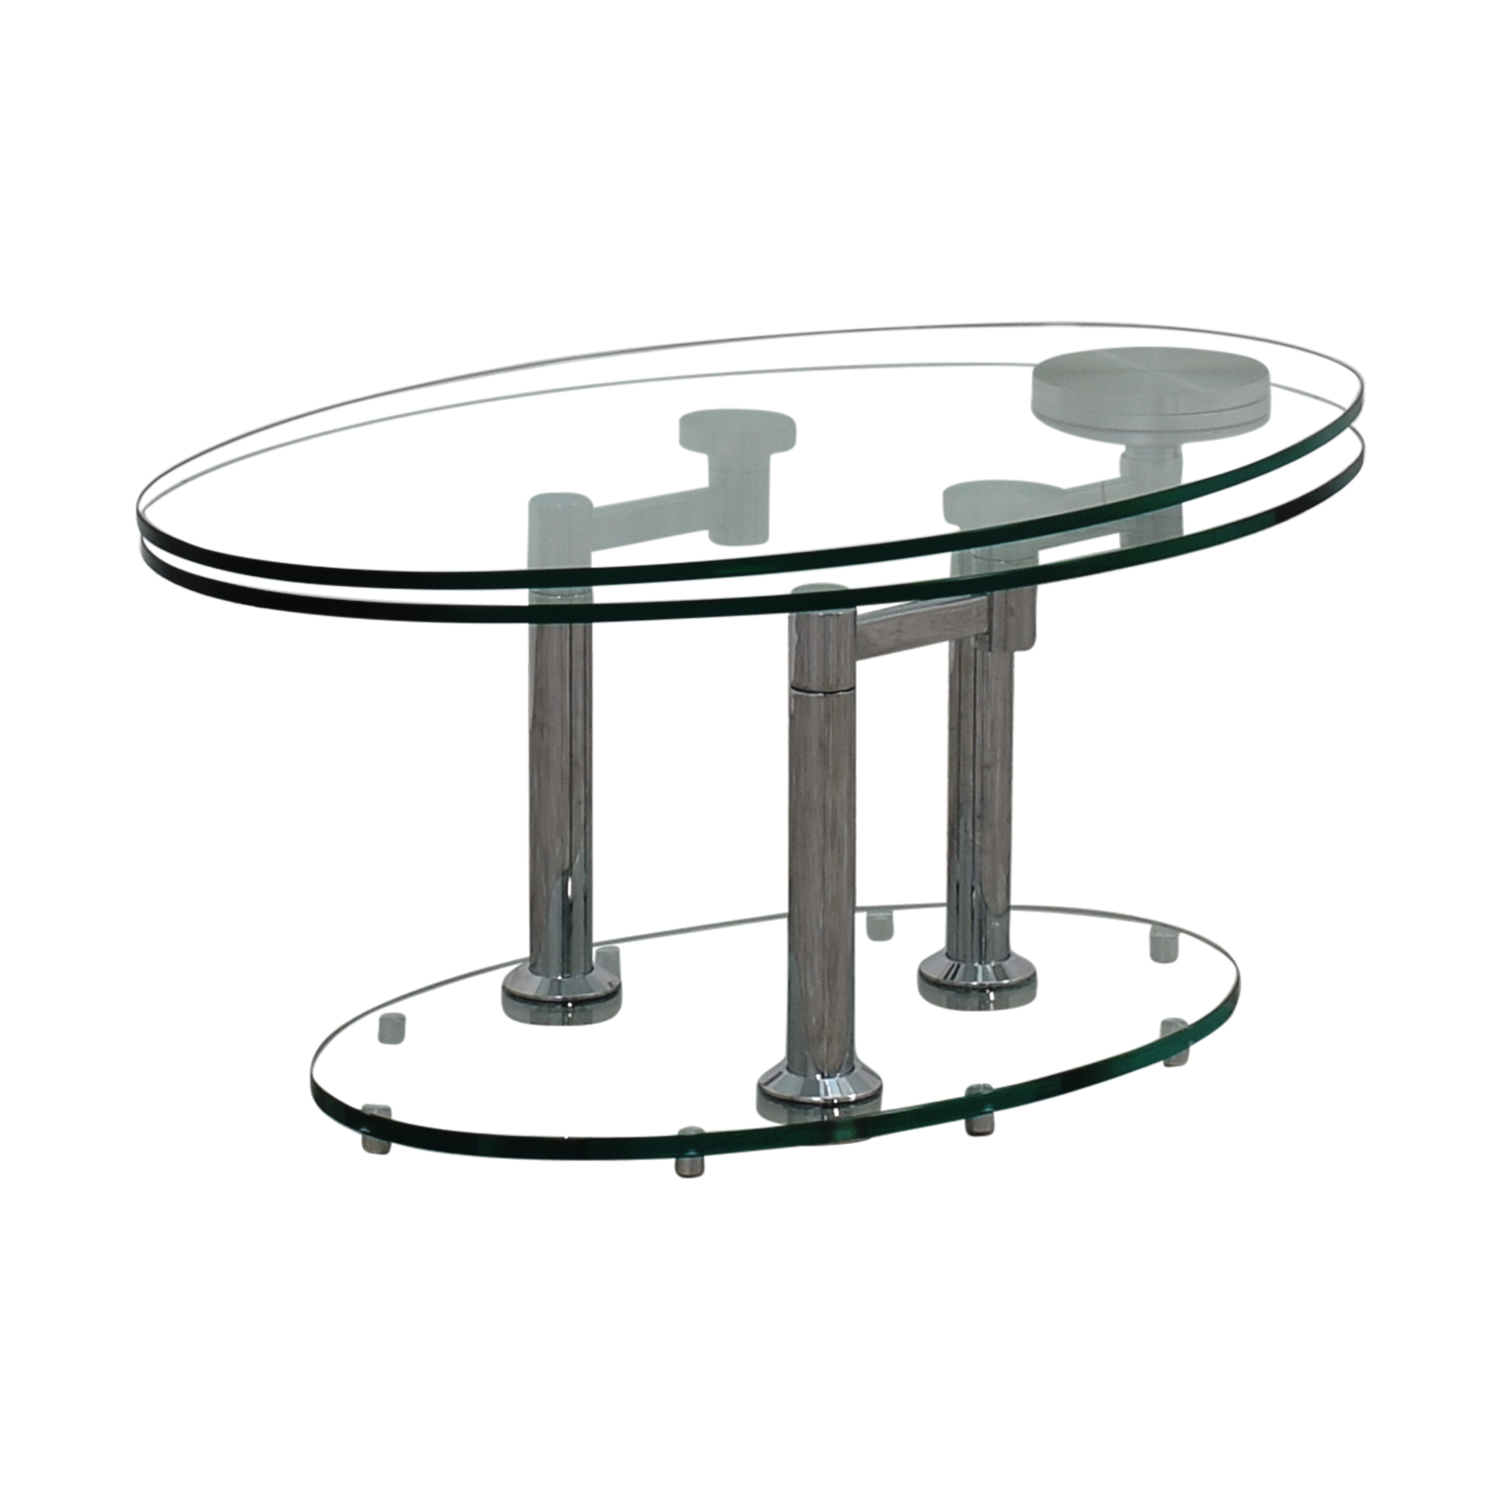 buy  Art Deco Movable Oval Glass & Metal Coffee Table online